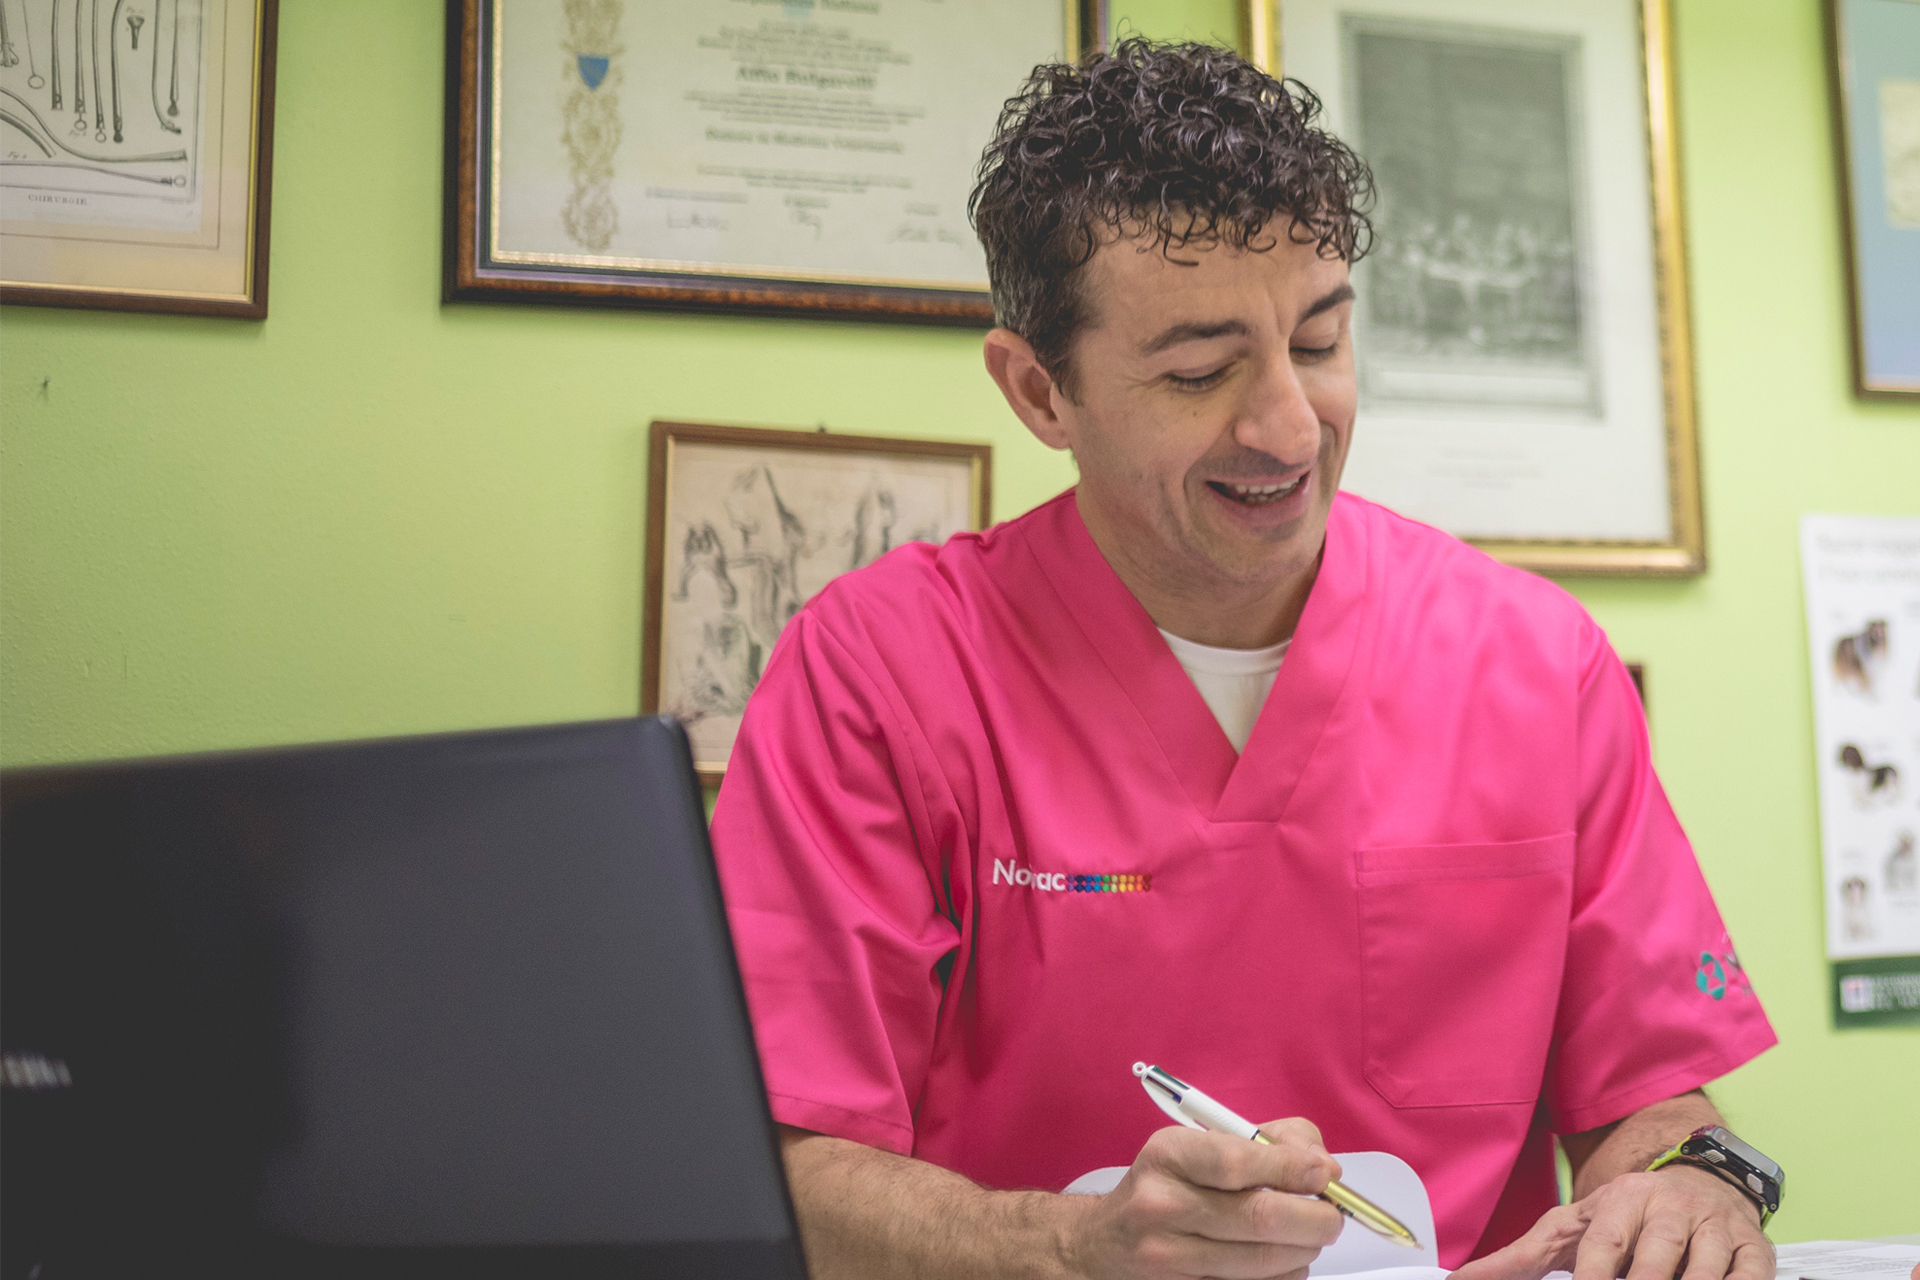 Ambulatorio Veterinario Alfio Bulgarelli medico specializzato